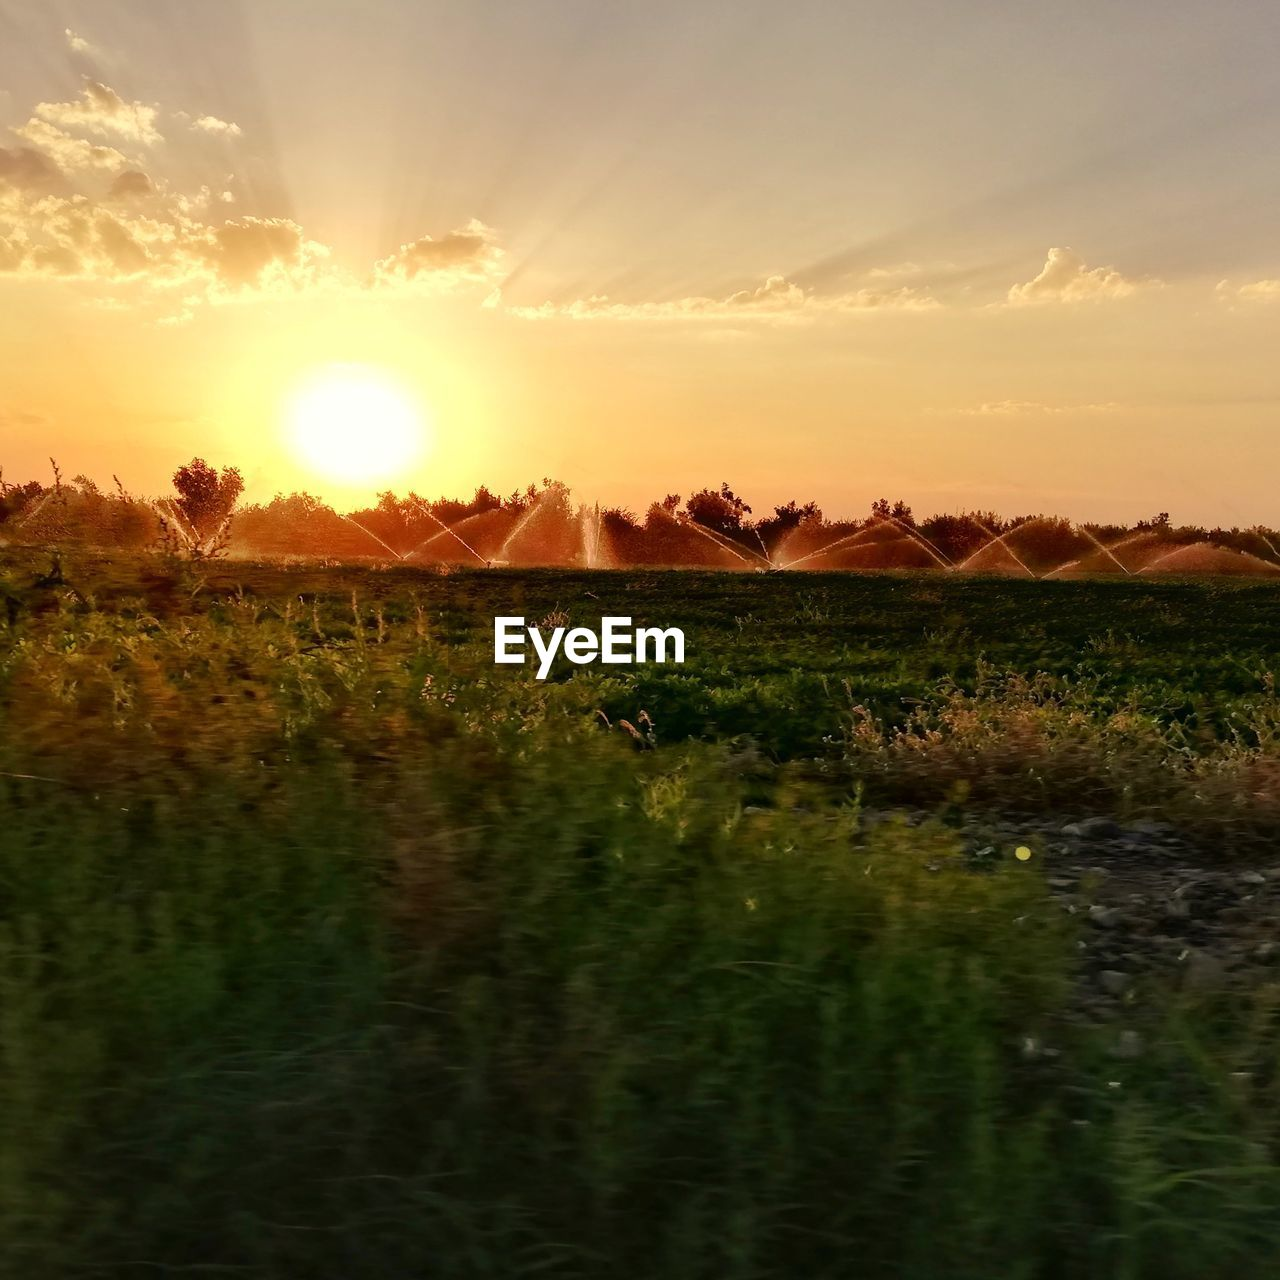 sky, sunset, scenics - nature, tranquil scene, beauty in nature, tranquility, plant, landscape, sun, field, environment, land, sunlight, nature, growth, cloud - sky, grass, no people, orange color, idyllic, lens flare, outdoors, bright